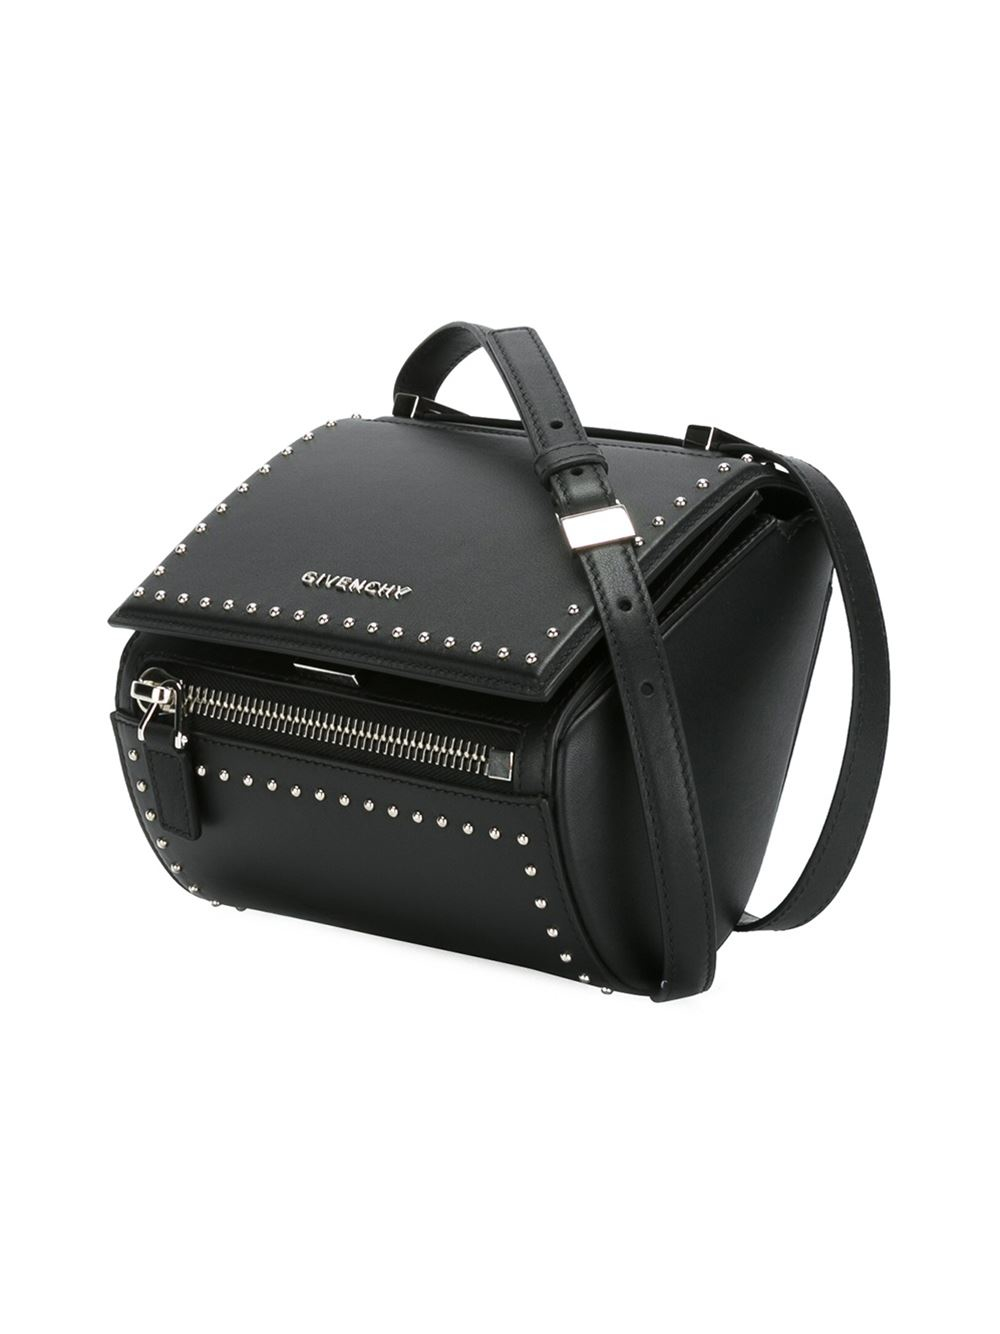 Givenchy Small Pandora Box Shoulder Bag in Black  ceee3fc457fa9